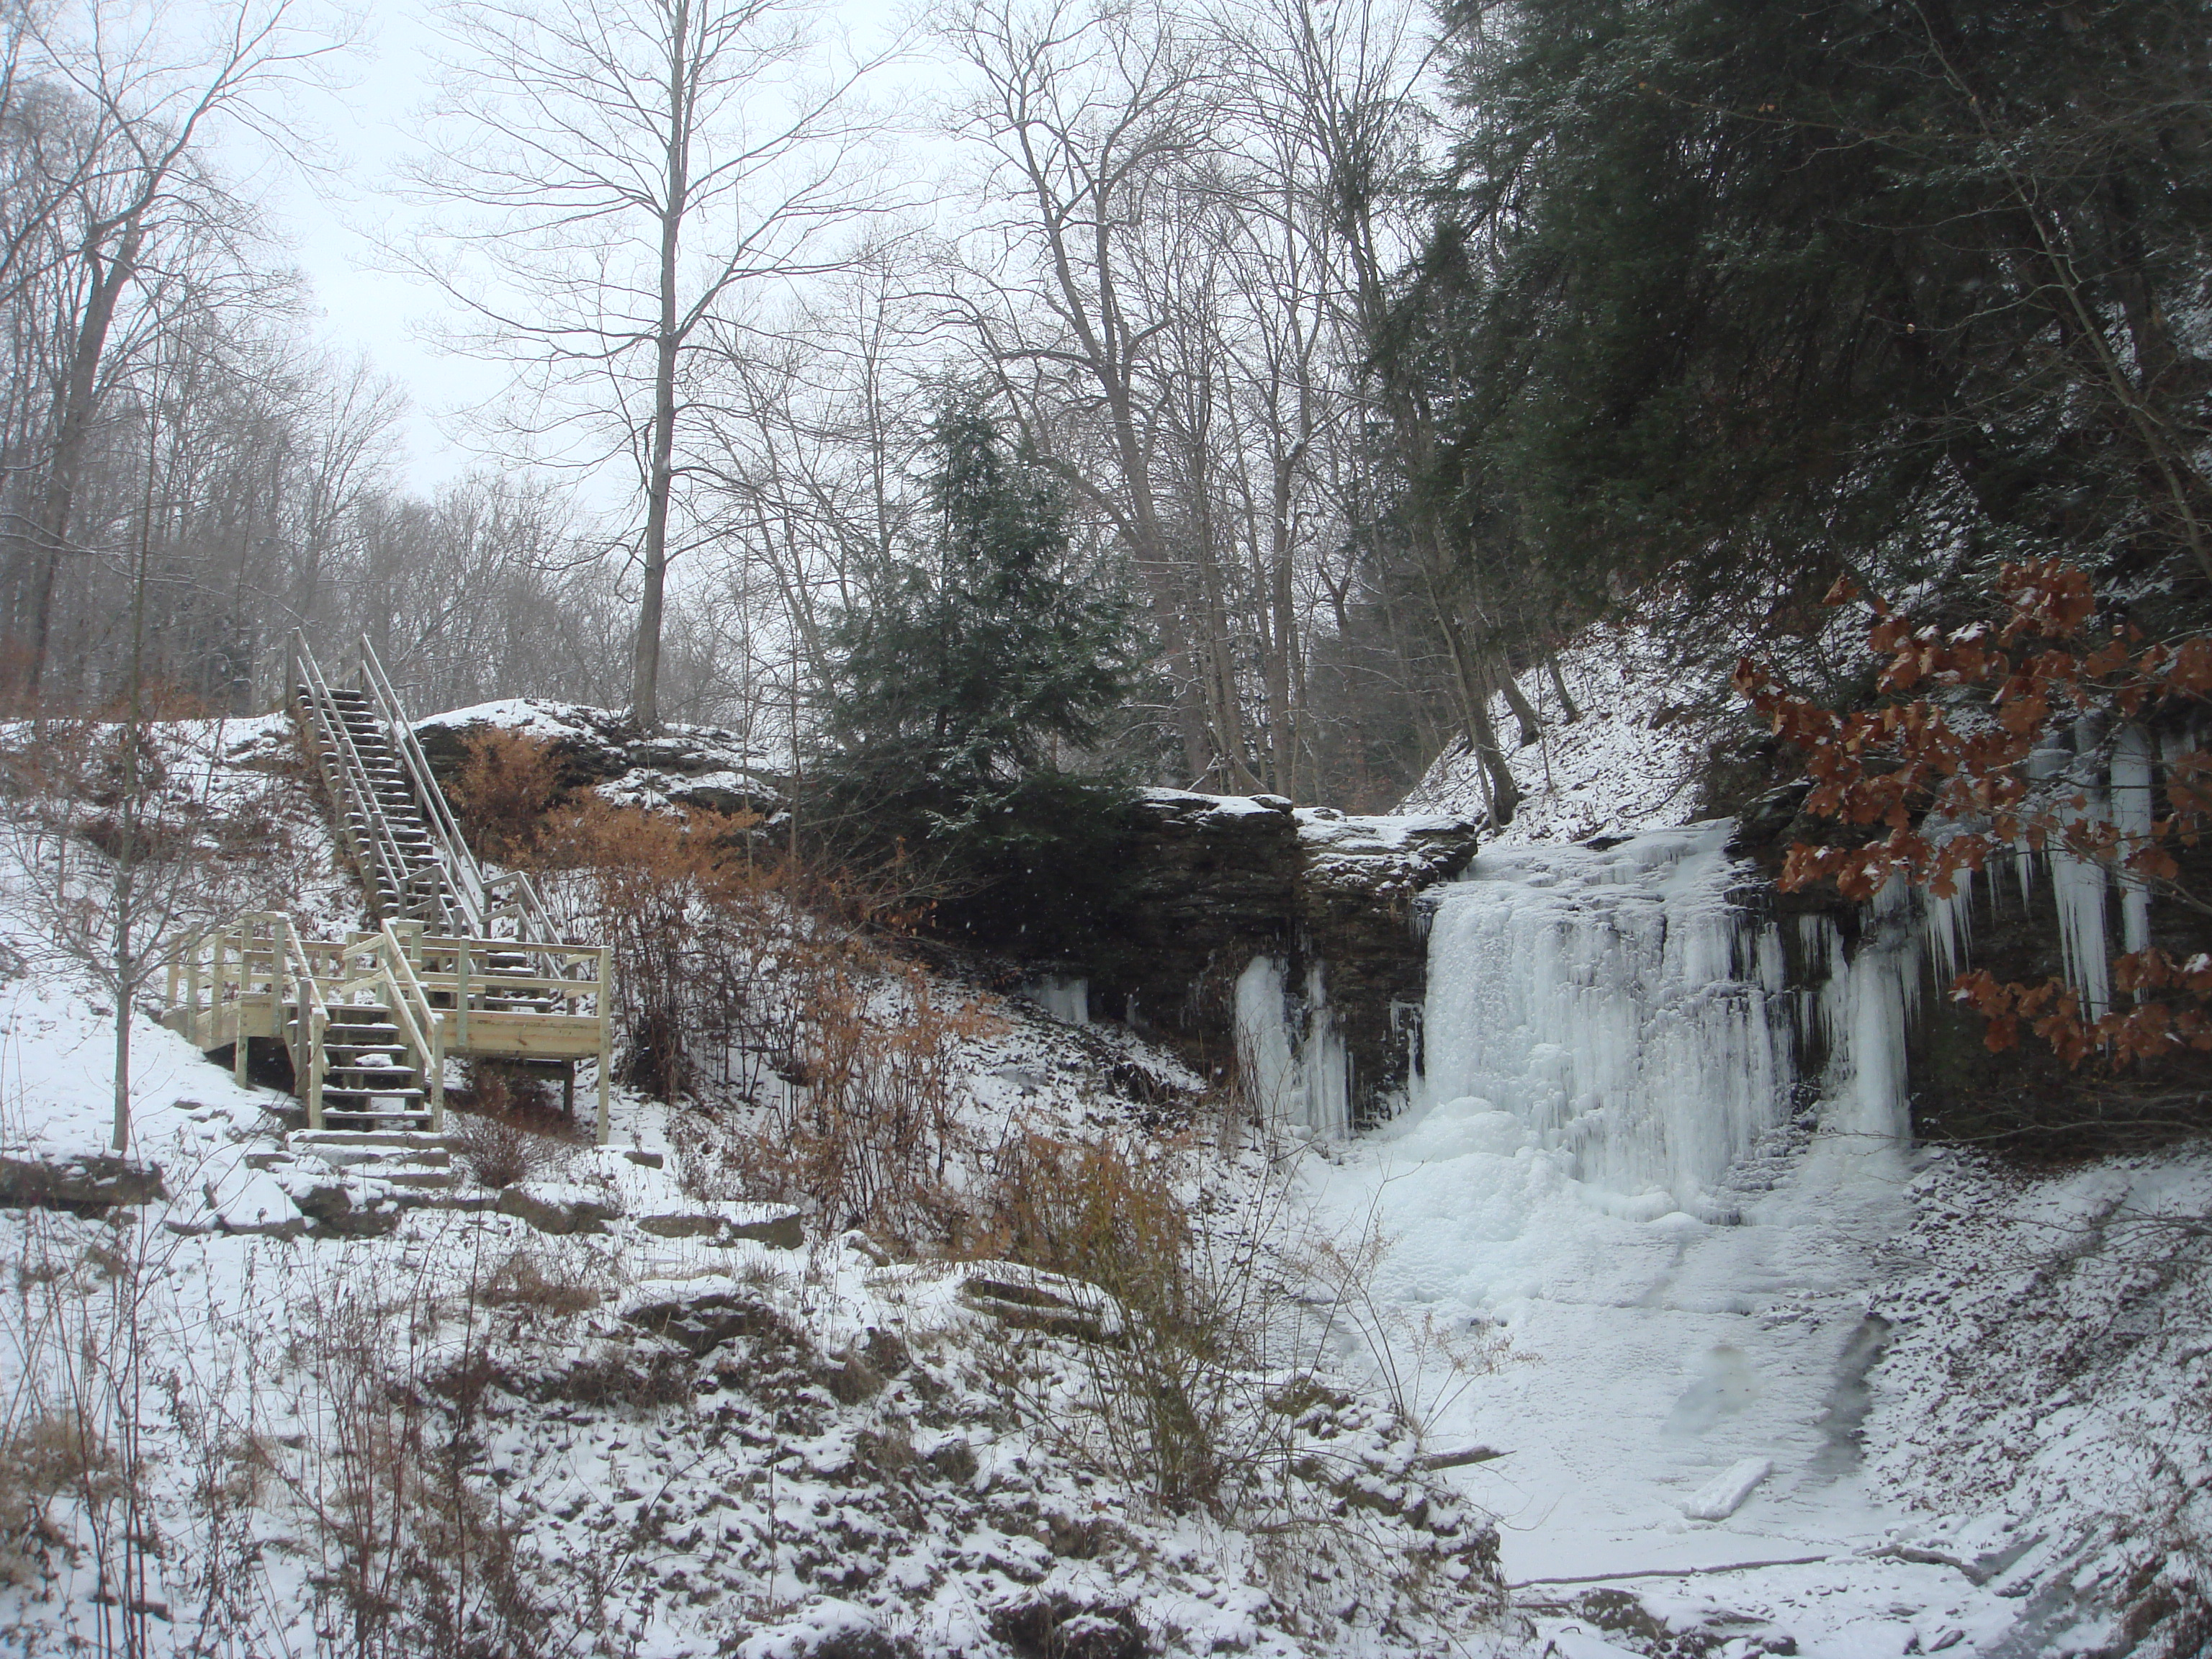 Stairs and (frozen) waterfall at Fall Run Park (Photo by Andrew)